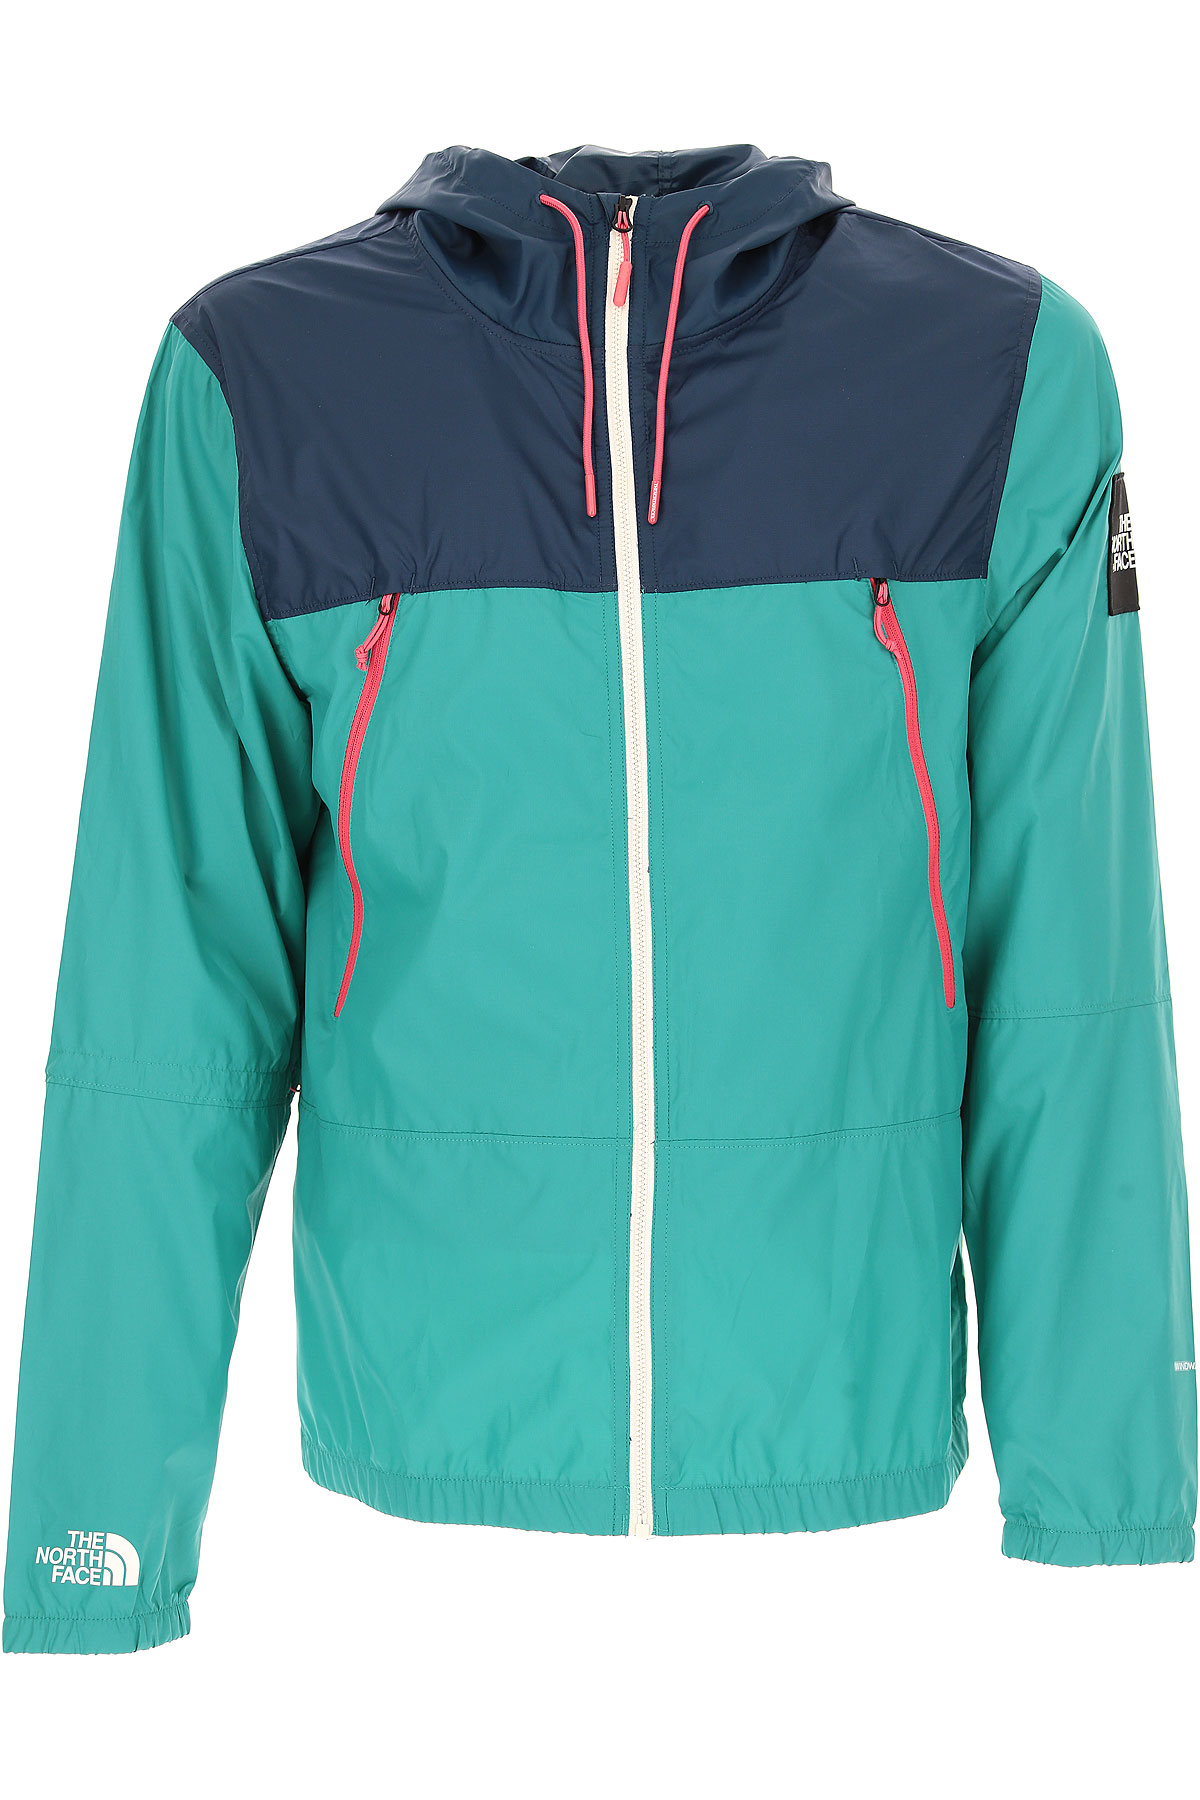 Image of The North Face Jacket for Men On Sale, Green, polyester, 2017, L M S